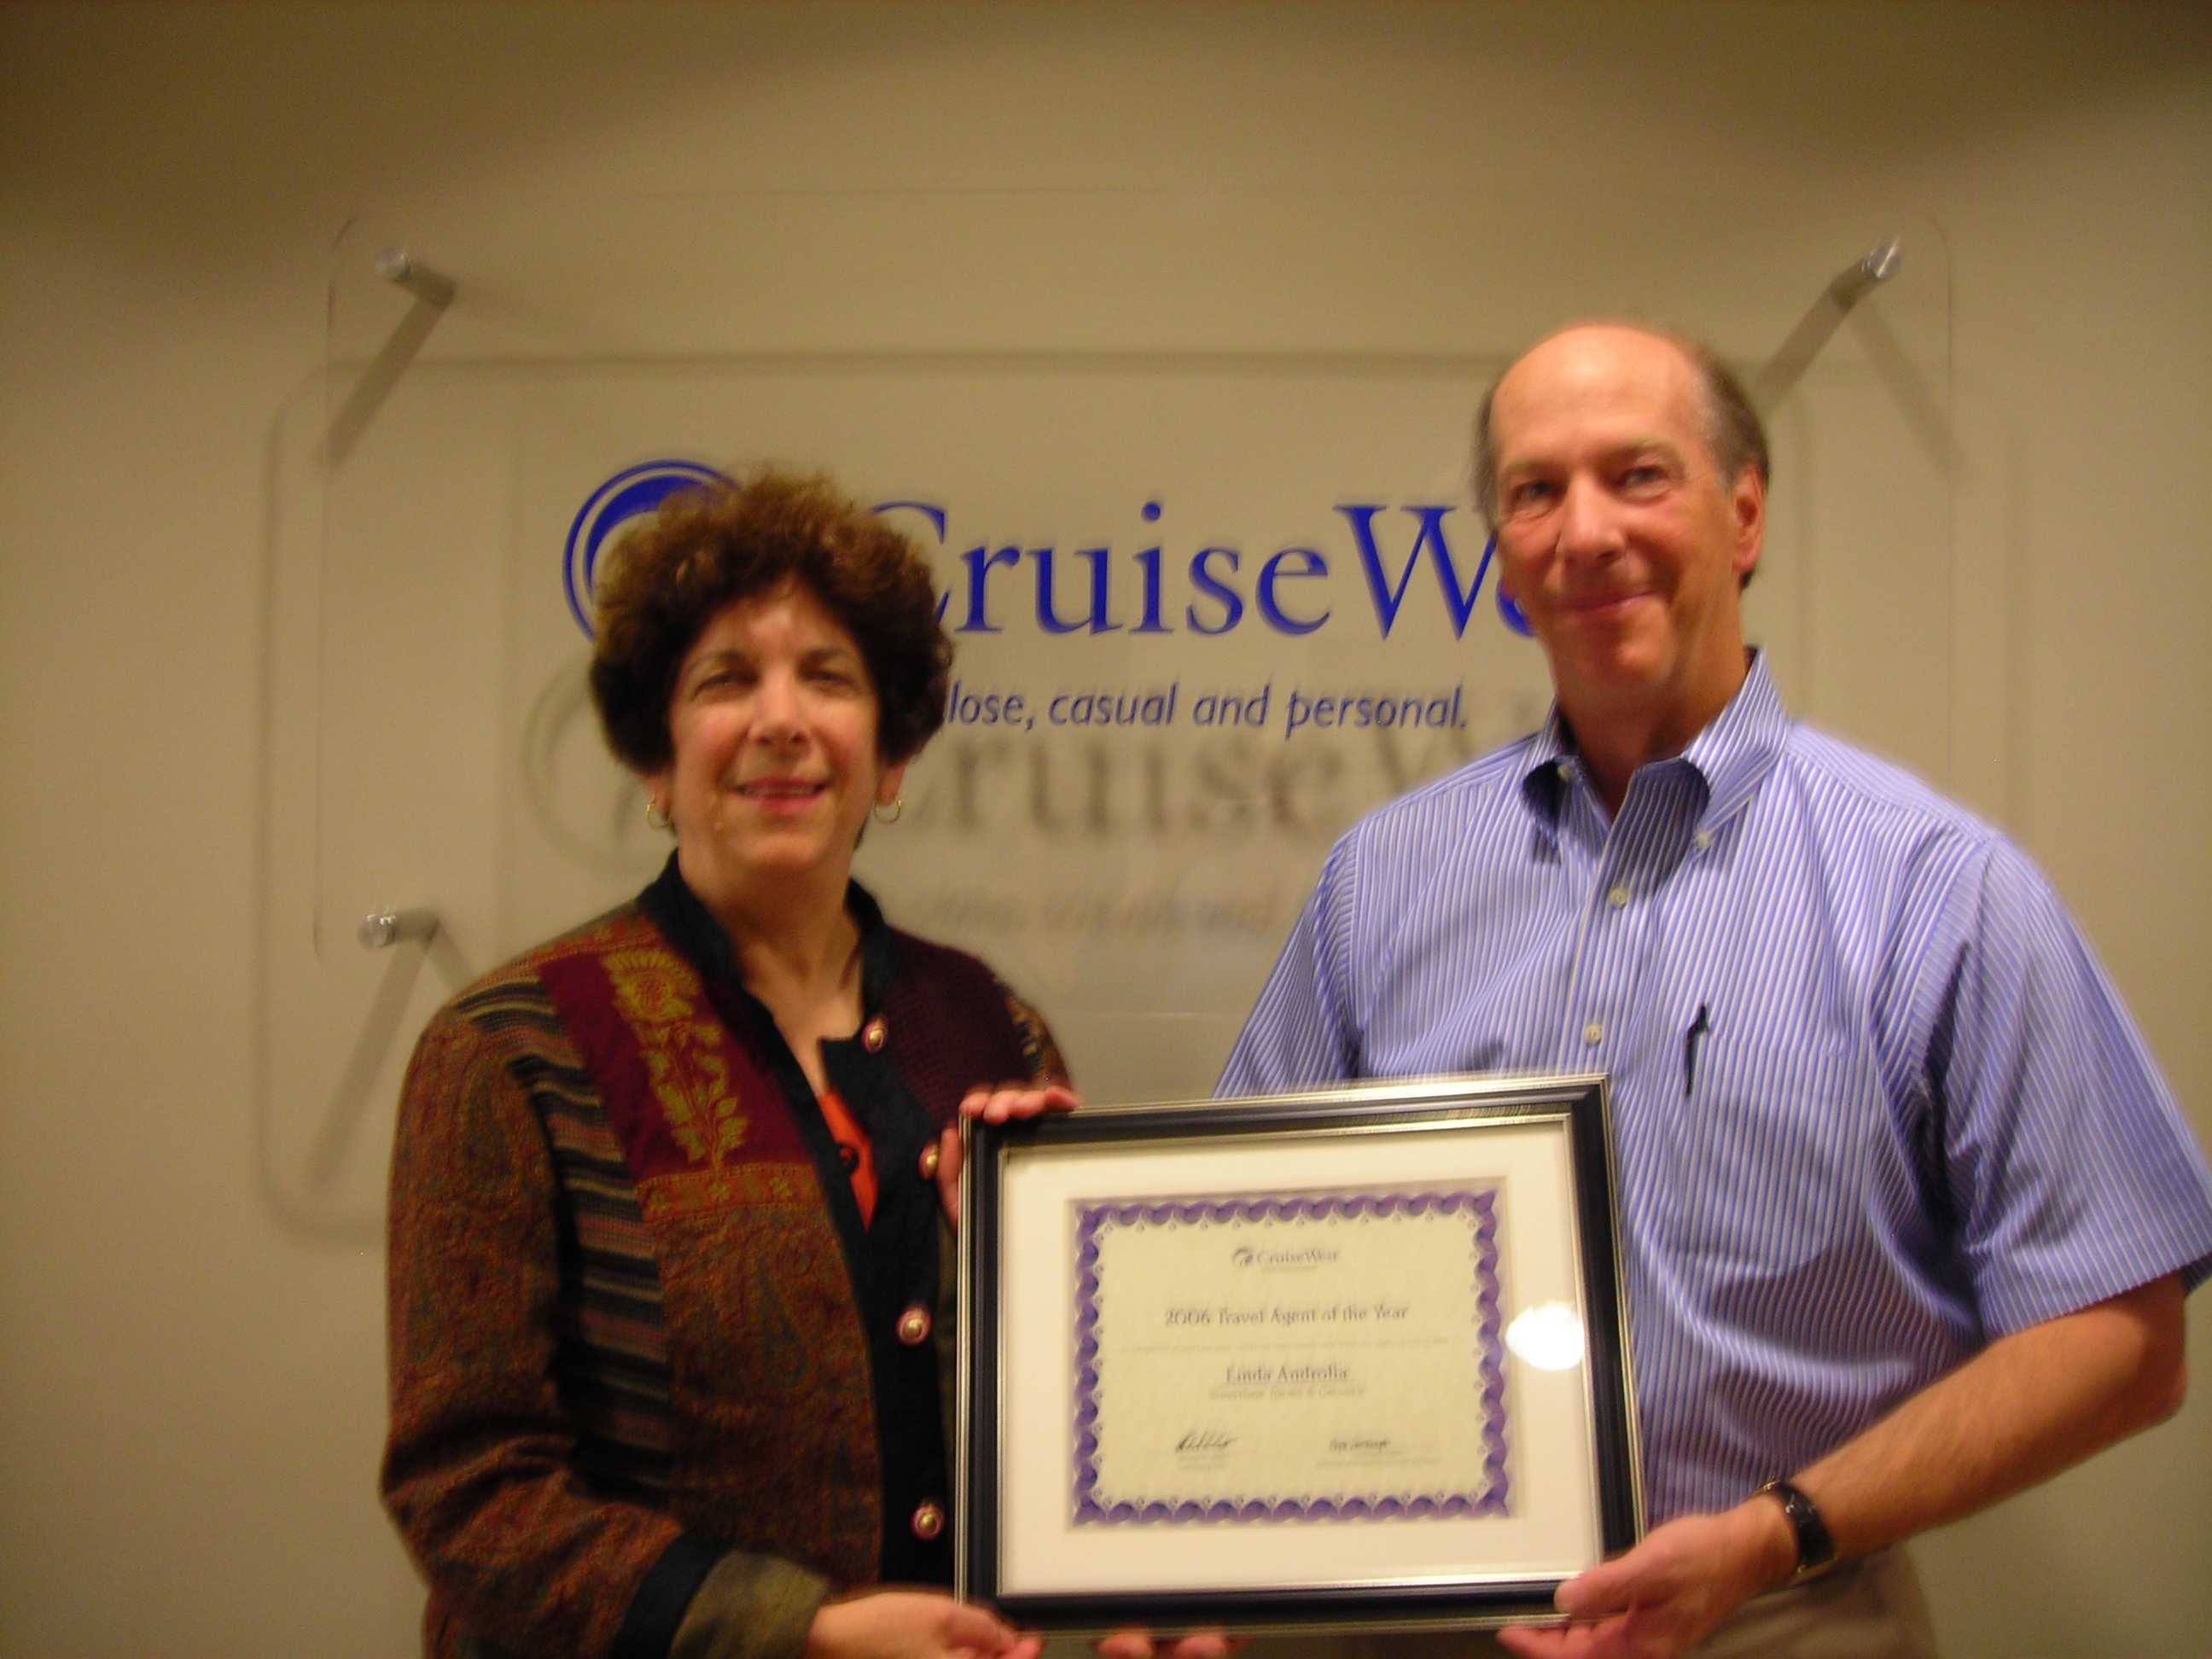 Linda of Sunstone & Jeff Krida, President of Cruise West